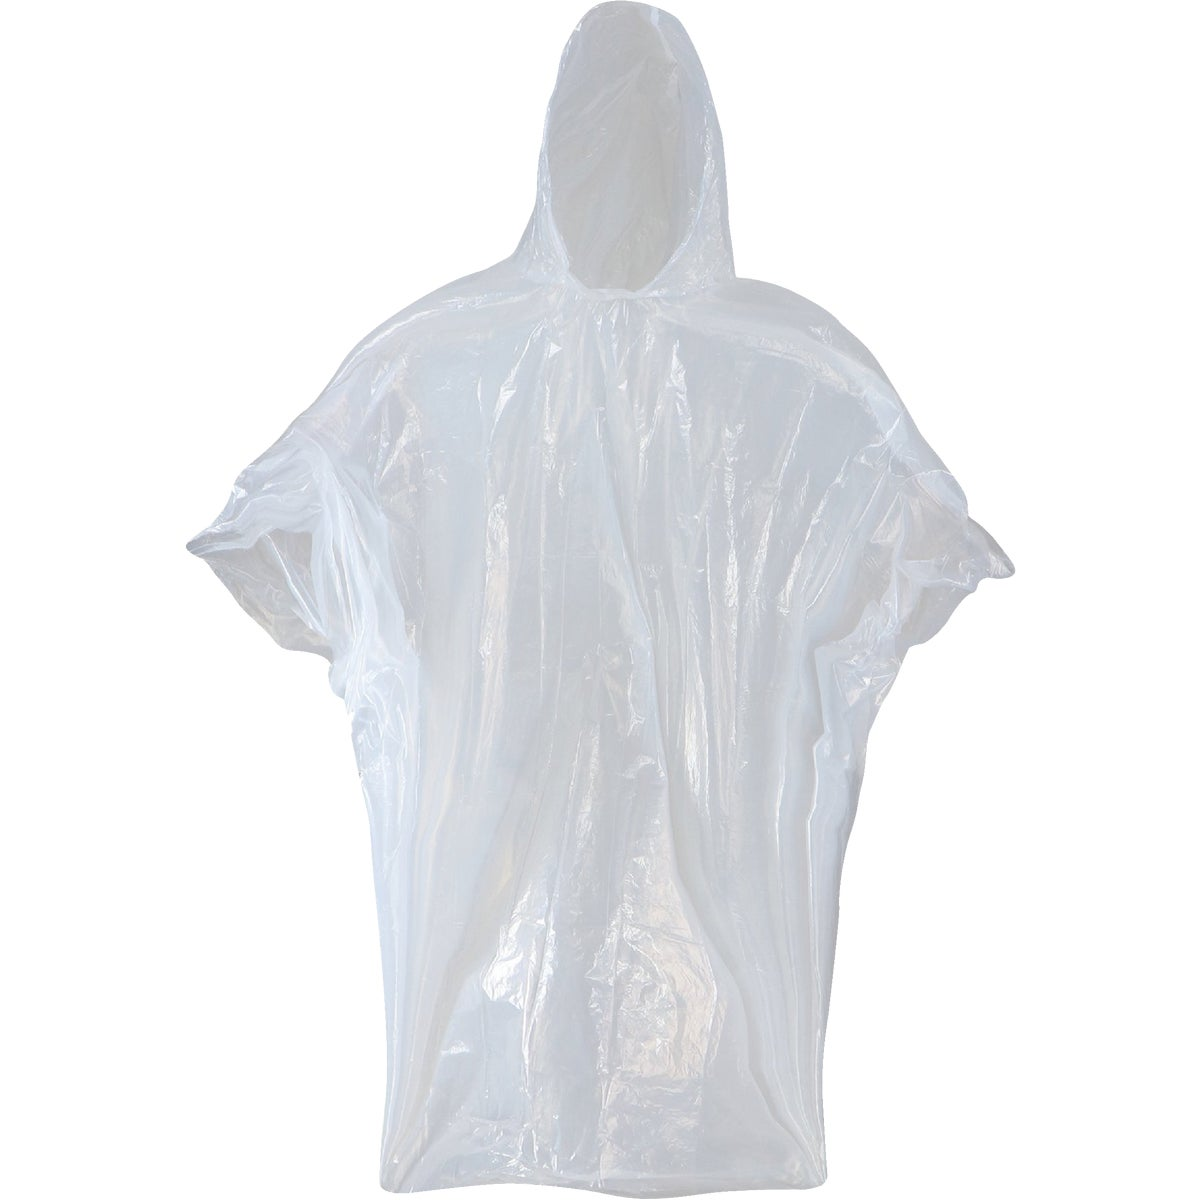 CLEAR 4MM PONCHO - R11610 by Custom Leathercraft